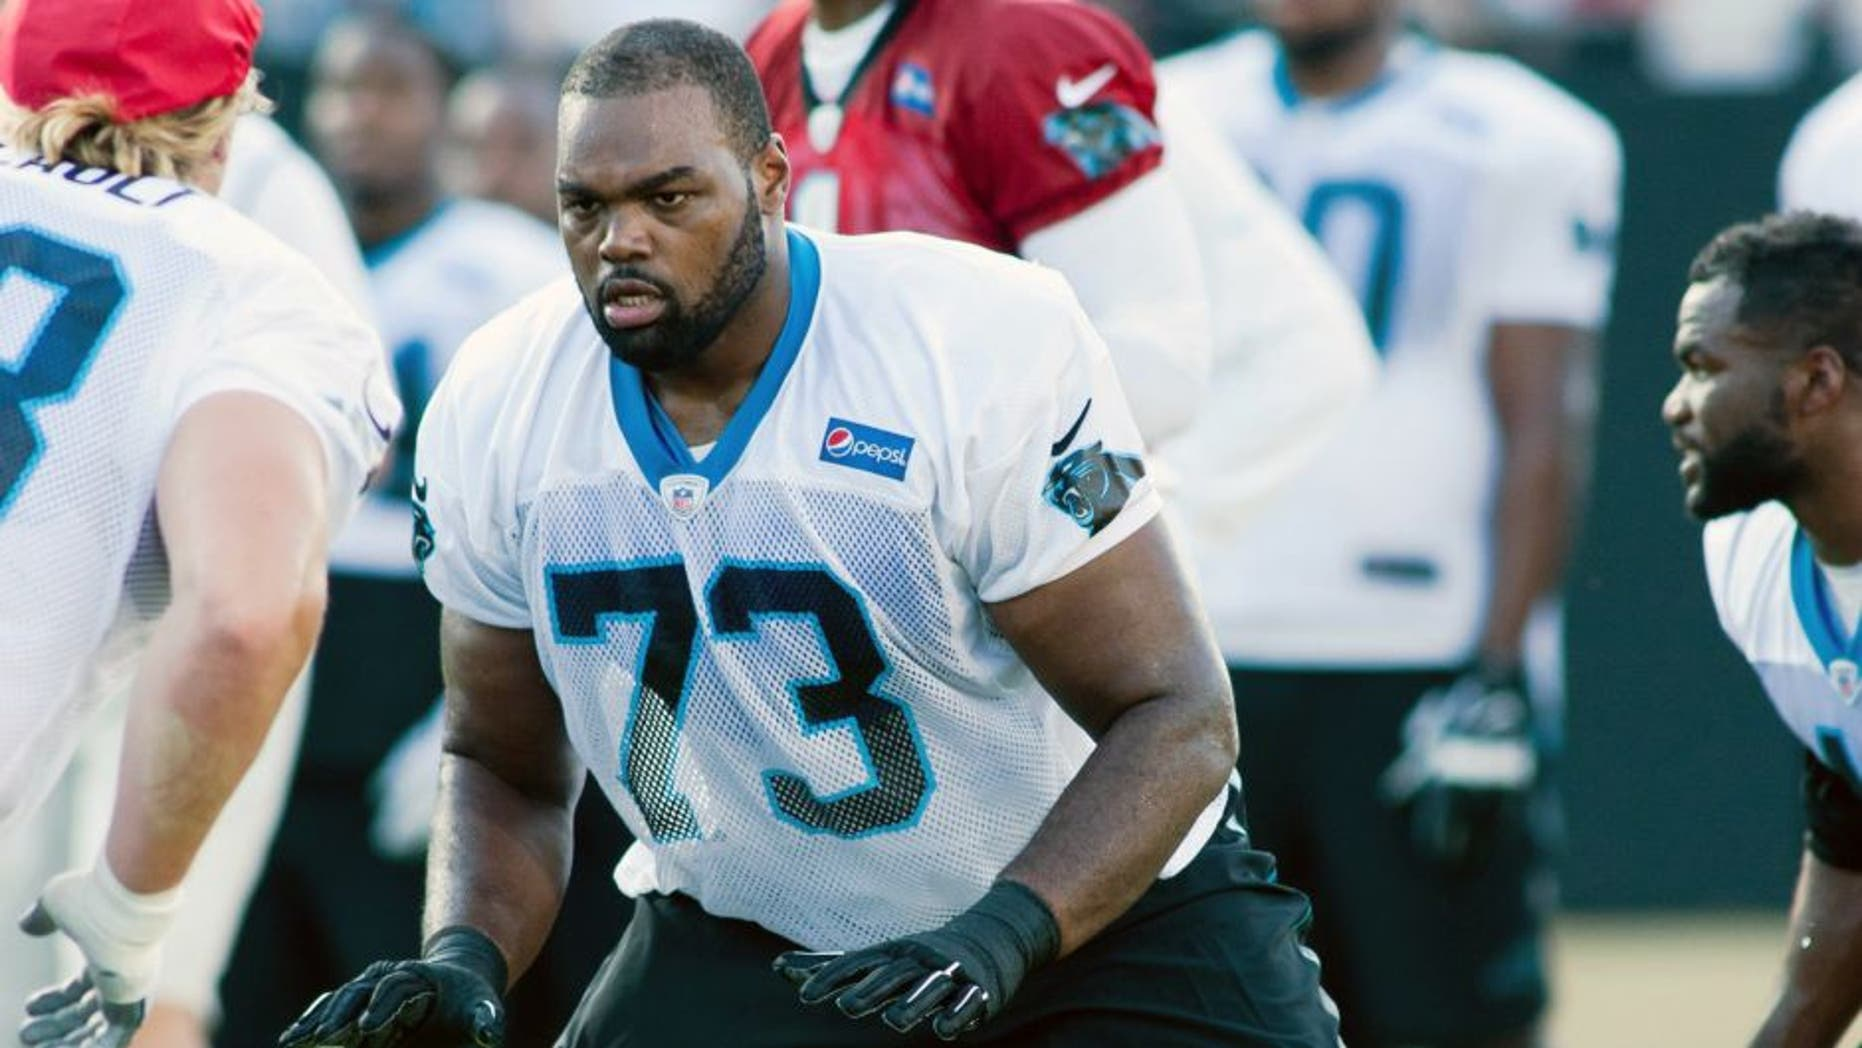 Jul 31, 2015; Spartanburg, SC, USA; Carolina Panthers tackle Michael Oher (73) looks to block during a drill in training camp held at Wofford College. Mandatory Credit: Jeremy Brevard-USA TODAY Sports